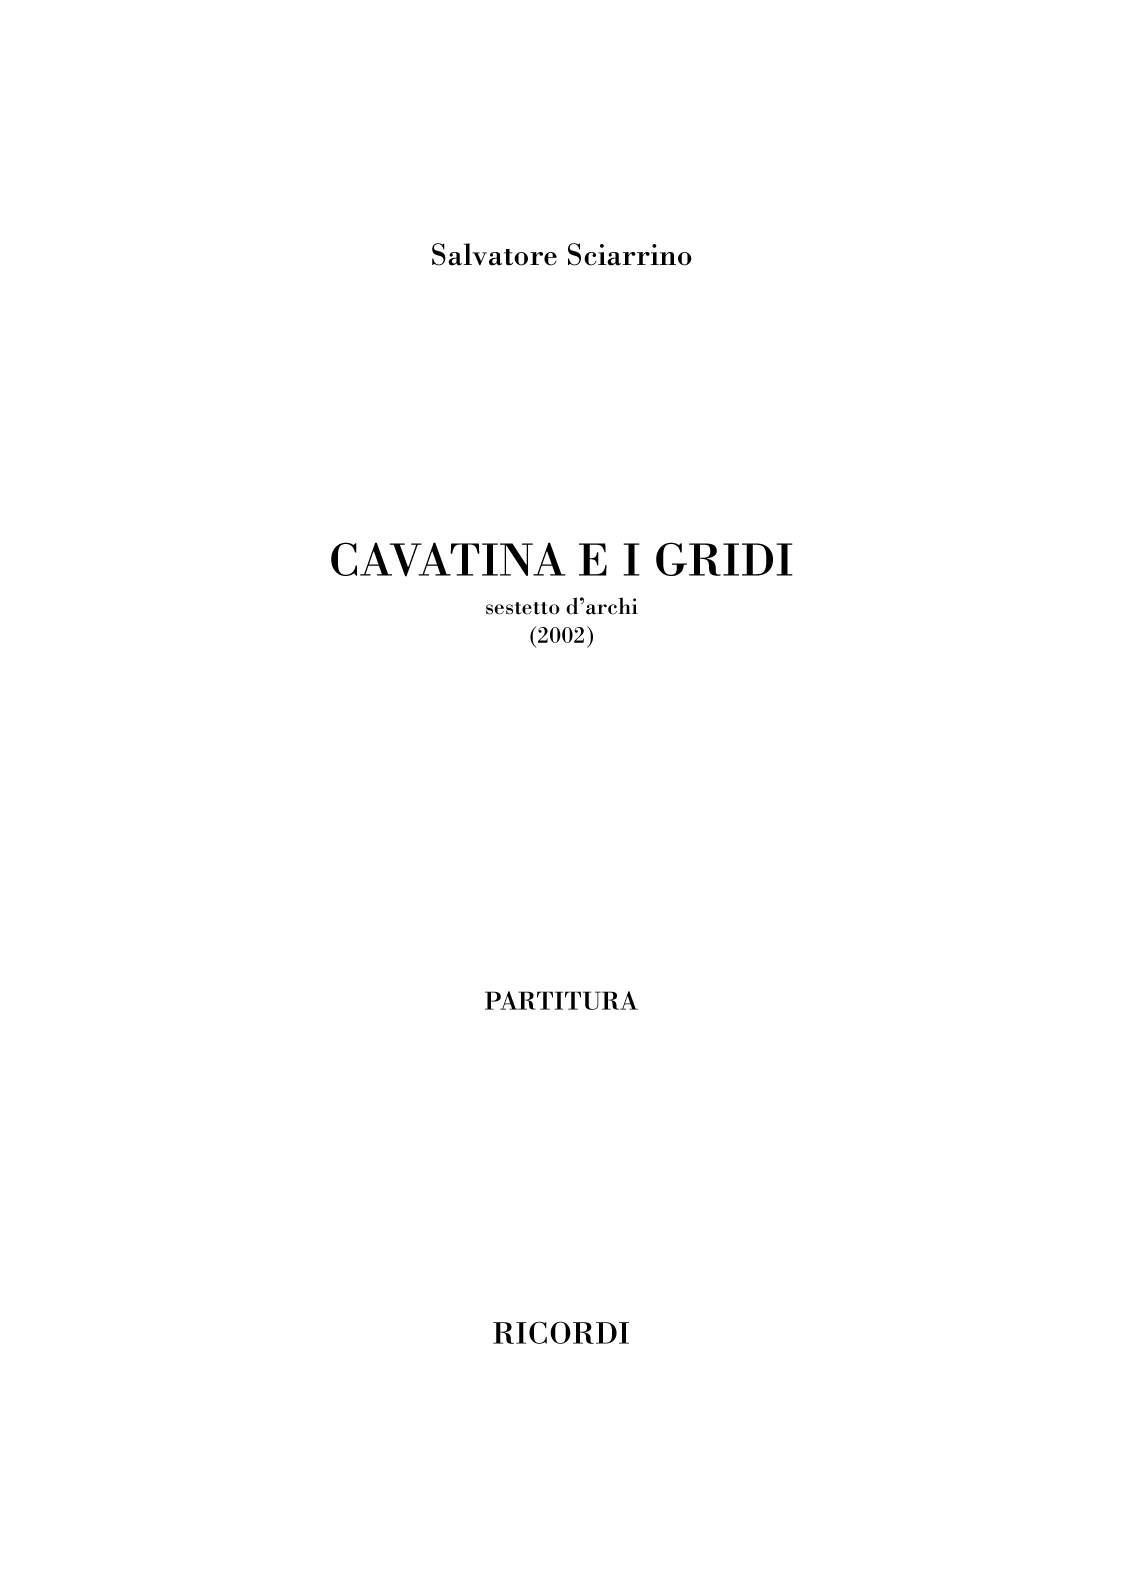 Cavatina e i gridi (flipbook)